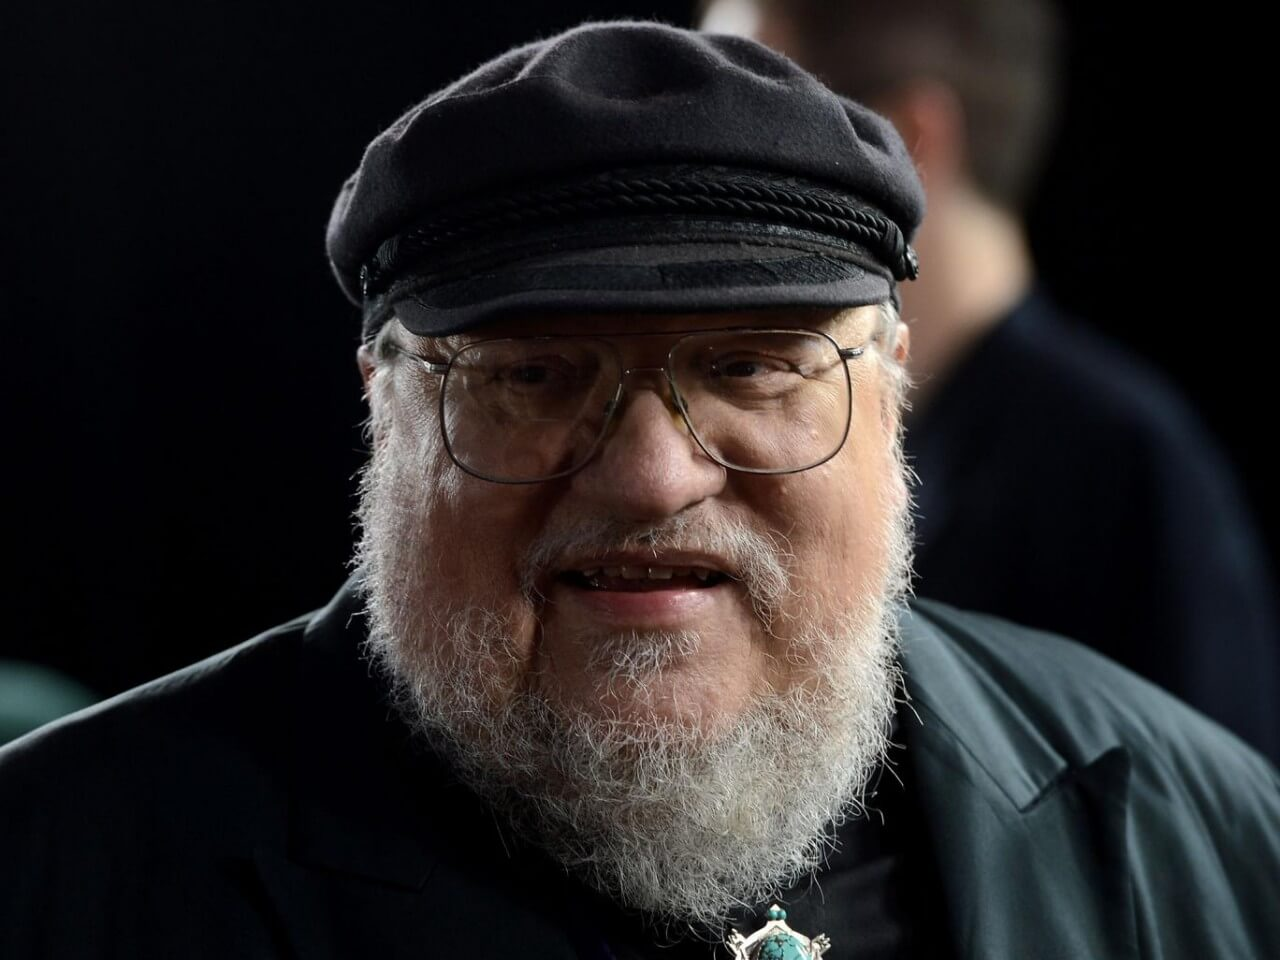 'Winds of Winter' Release Date Delayed